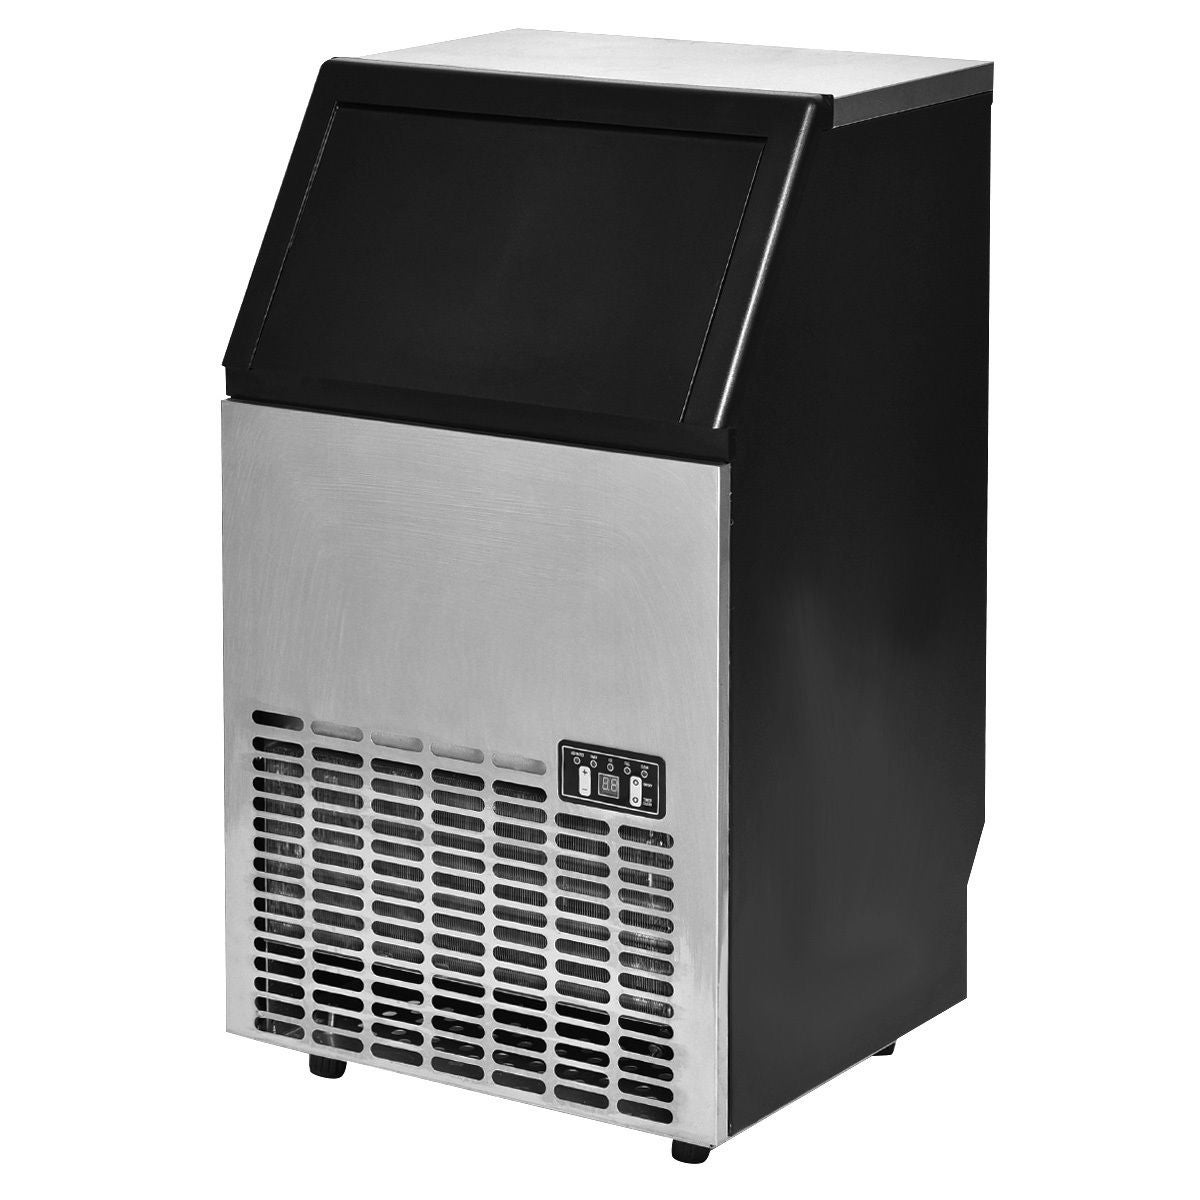 shop costway built in stainless steel commercial ice maker portable ice machine restaurant on sale free shipping today overstockcom 15896013 - Commercial Ice Machine